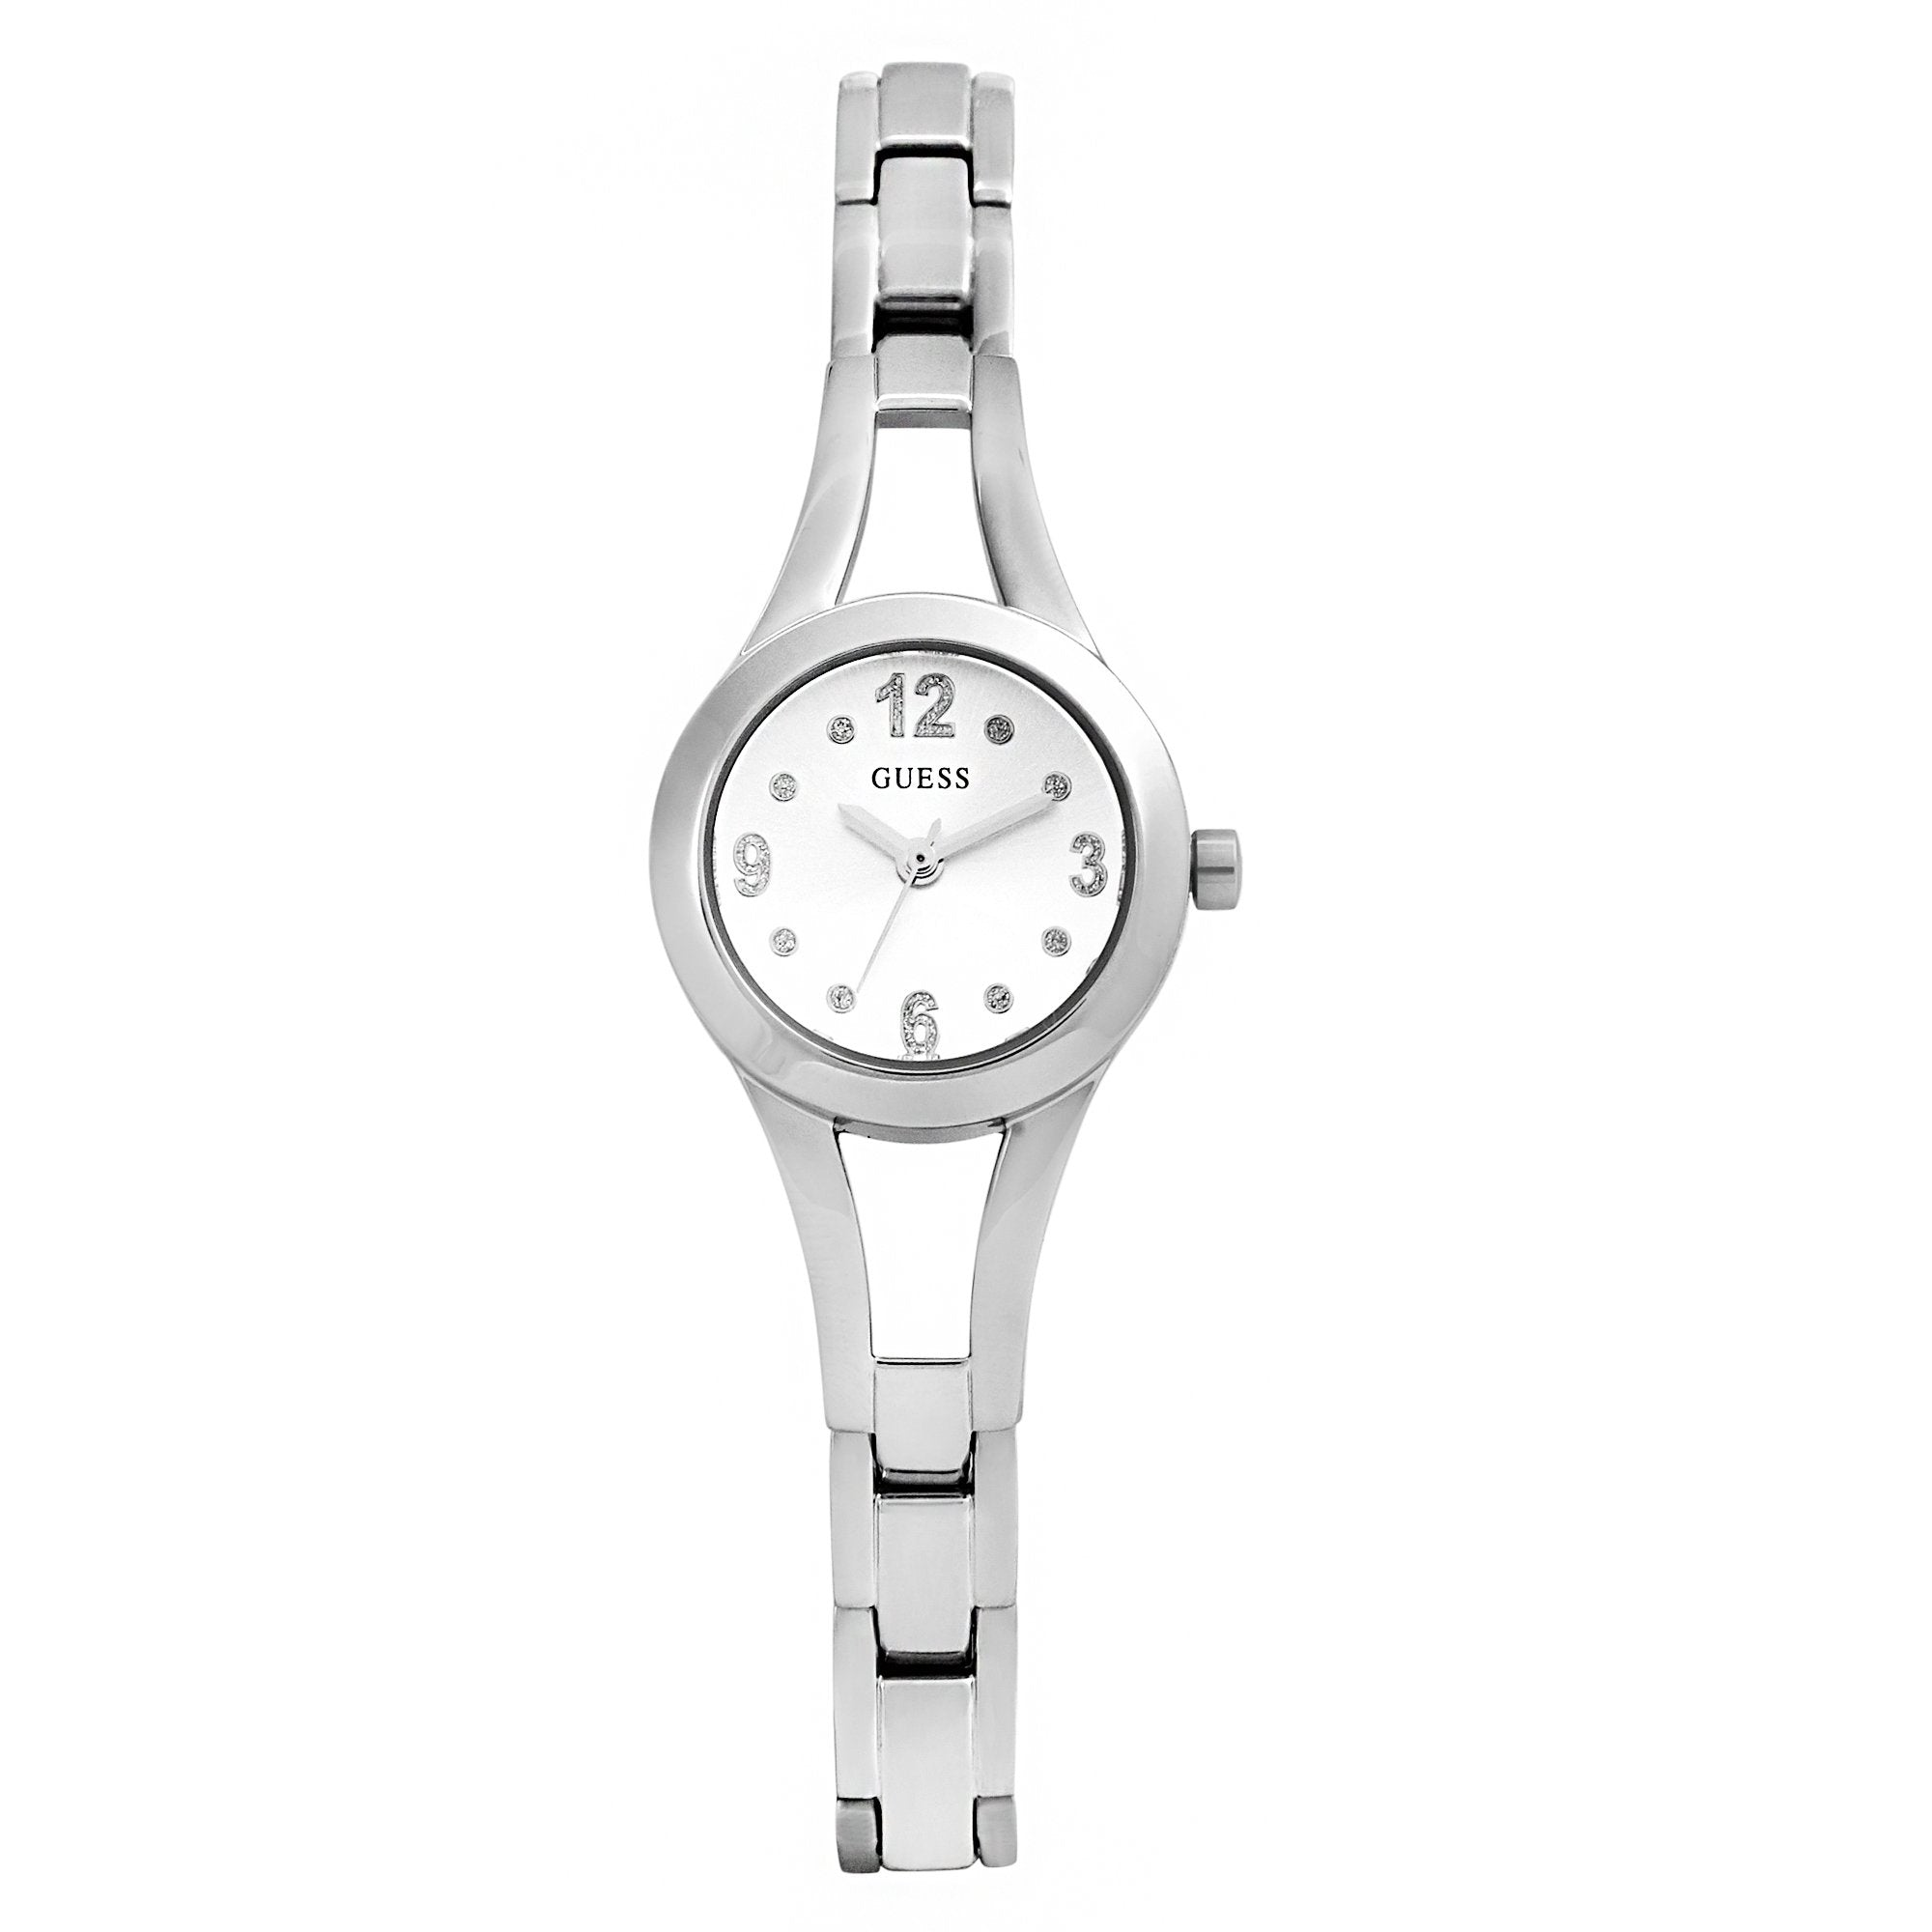 Guess Evie Silver Silver Bracelet Watches Isbister & Co Wholesale